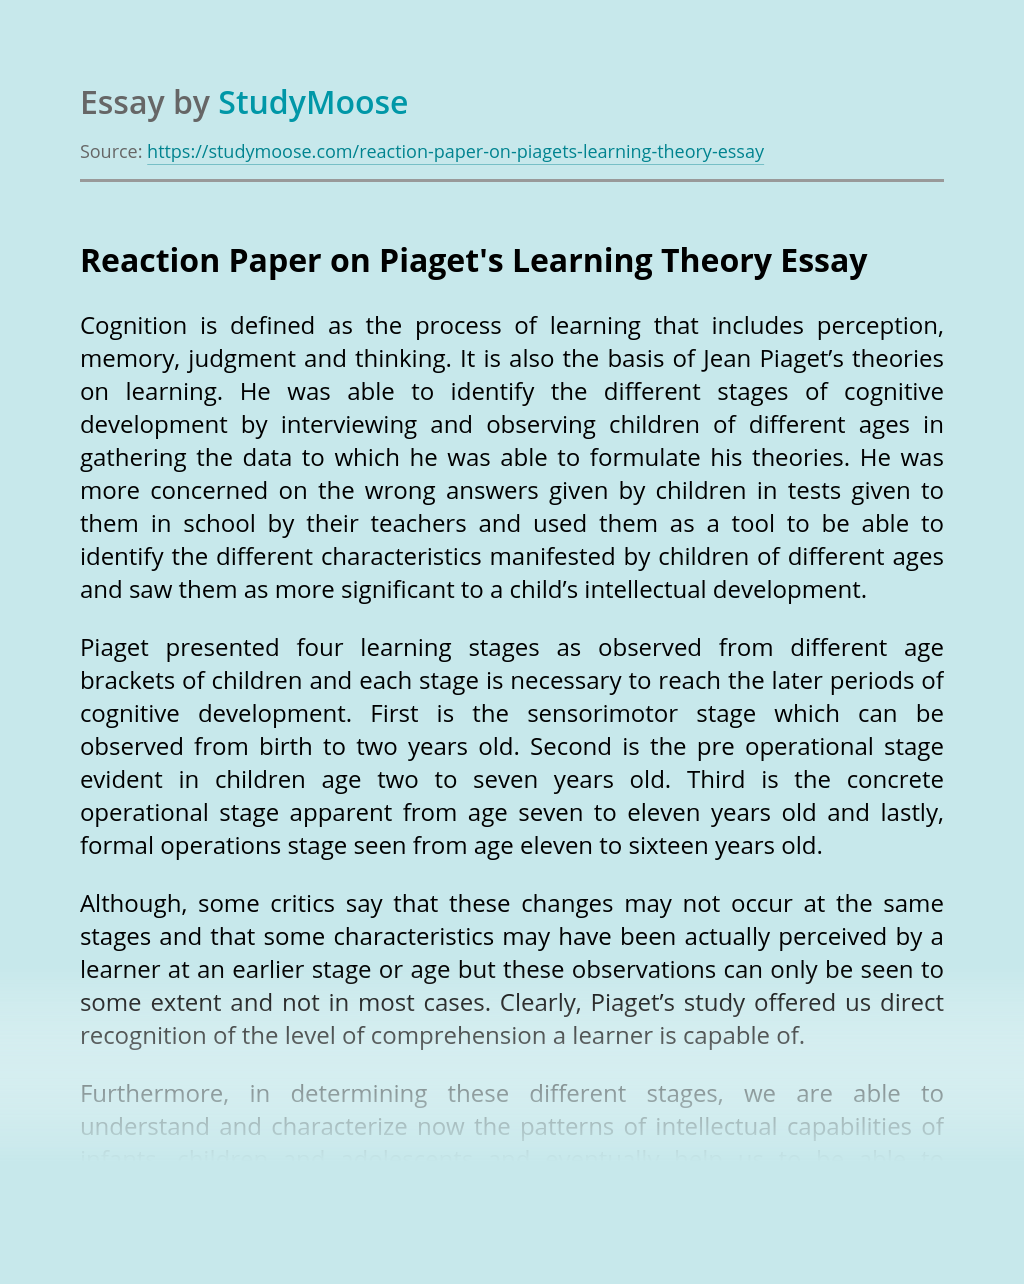 Reaction Paper on Piaget's Learning Theory